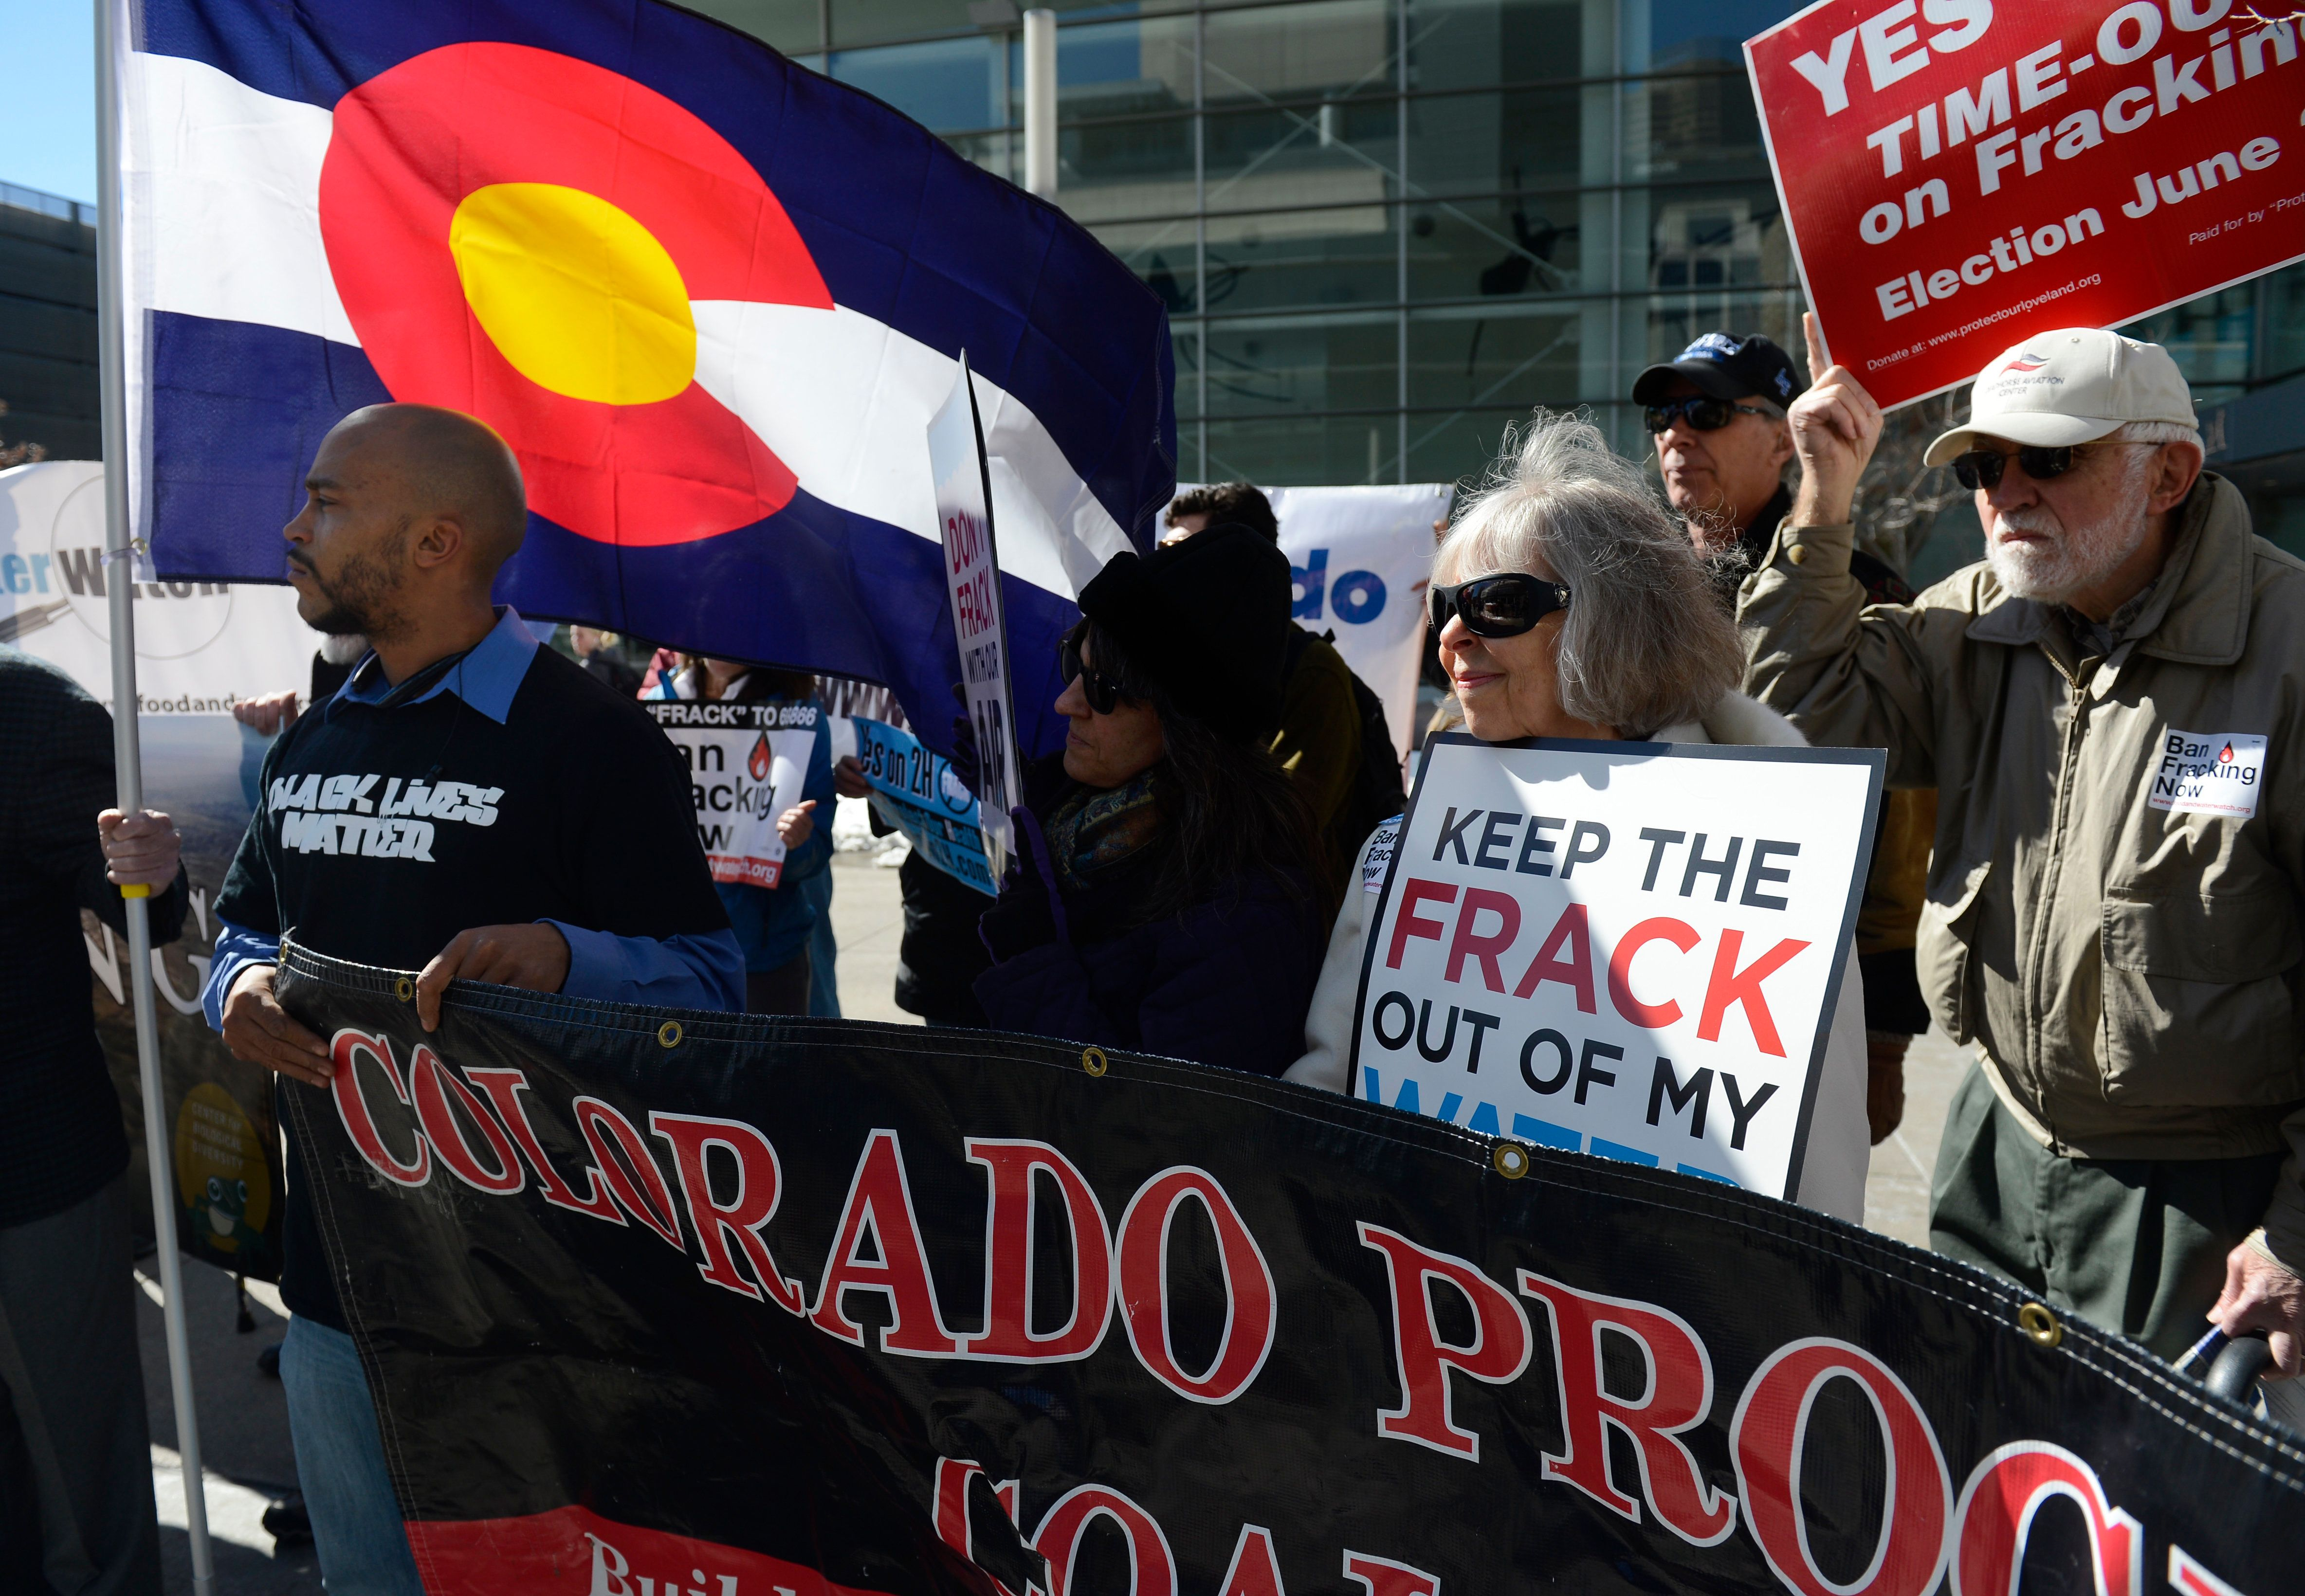 DENVER, CO - FEBRUARY 24: Anti-fracking activists gather outside of the Colorado Convention Center while an Oil and Gas Task Force meeting was taking place February 24, 2015. (Photo by Andy Cross/The Denver Post via Getty Images)